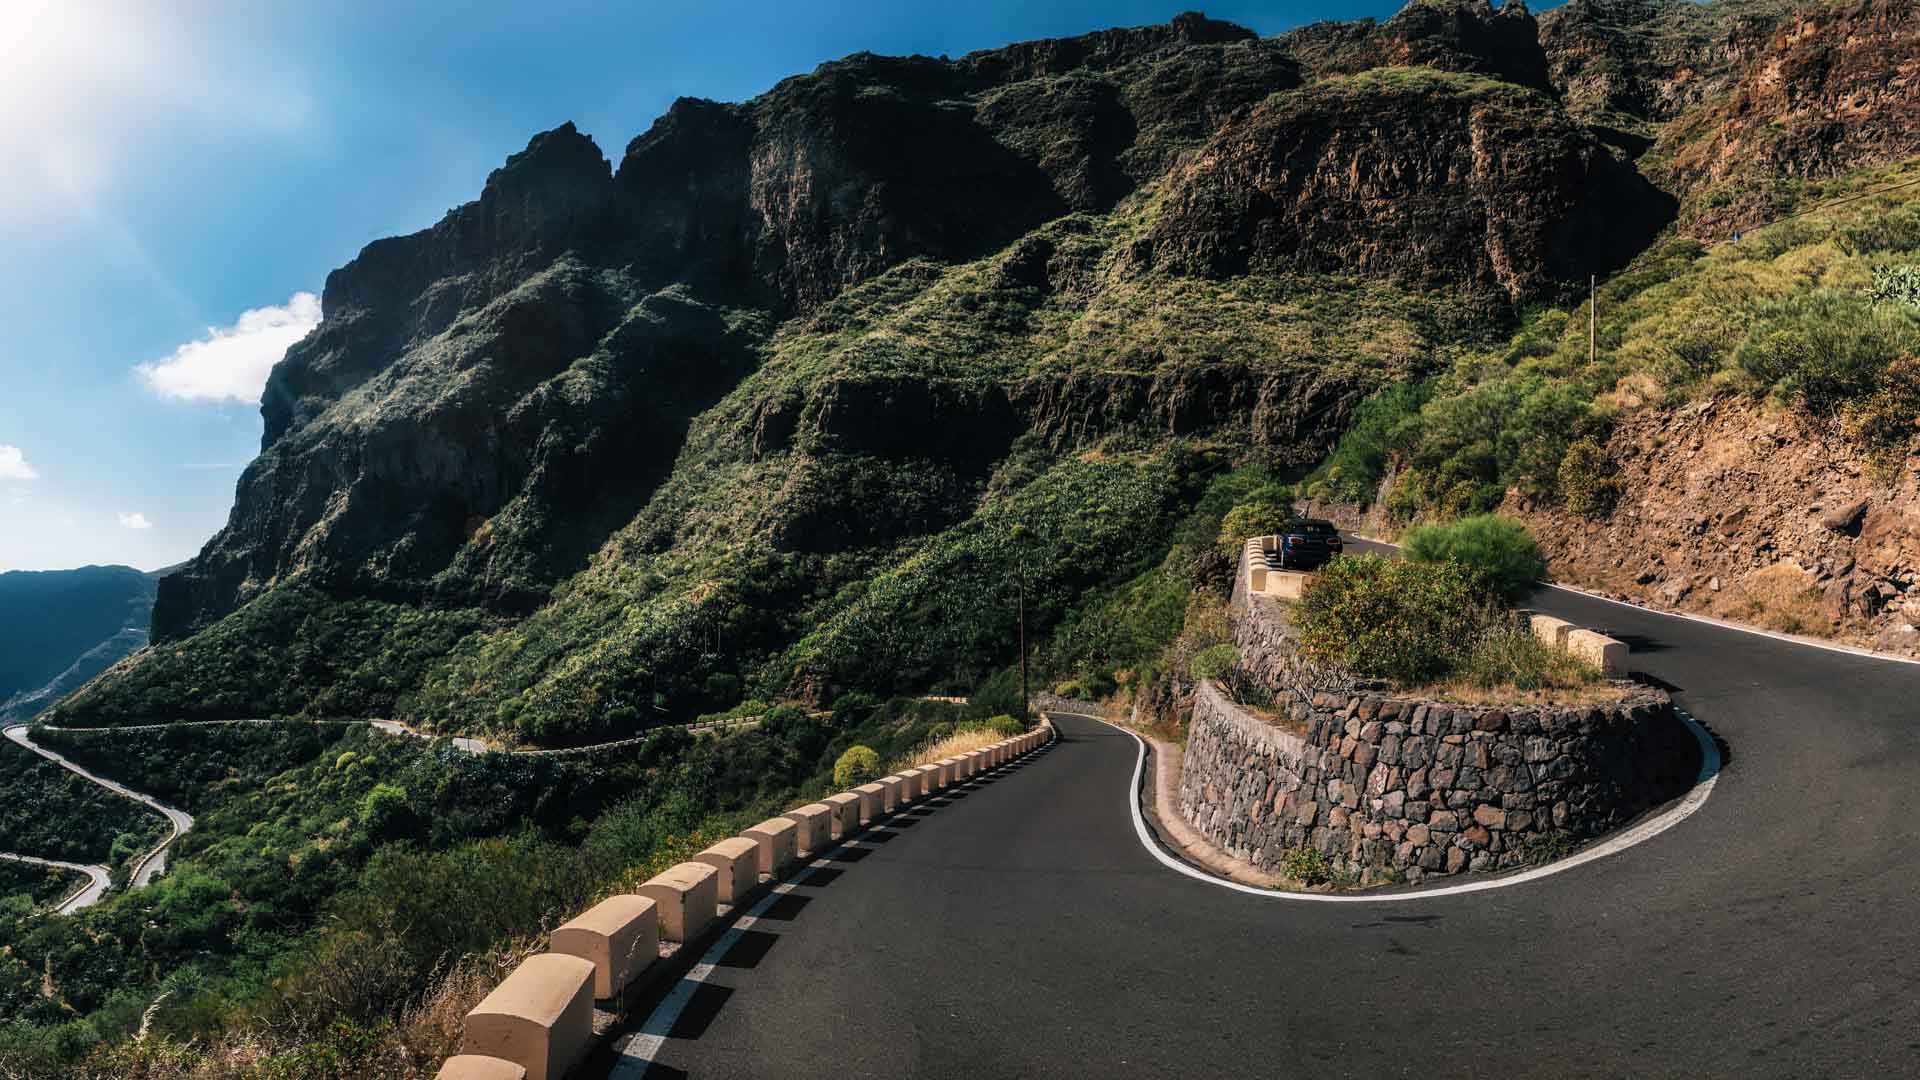 Guide to cycling Tenerife's Masca and Teno lighthouse - Epic Road Rides